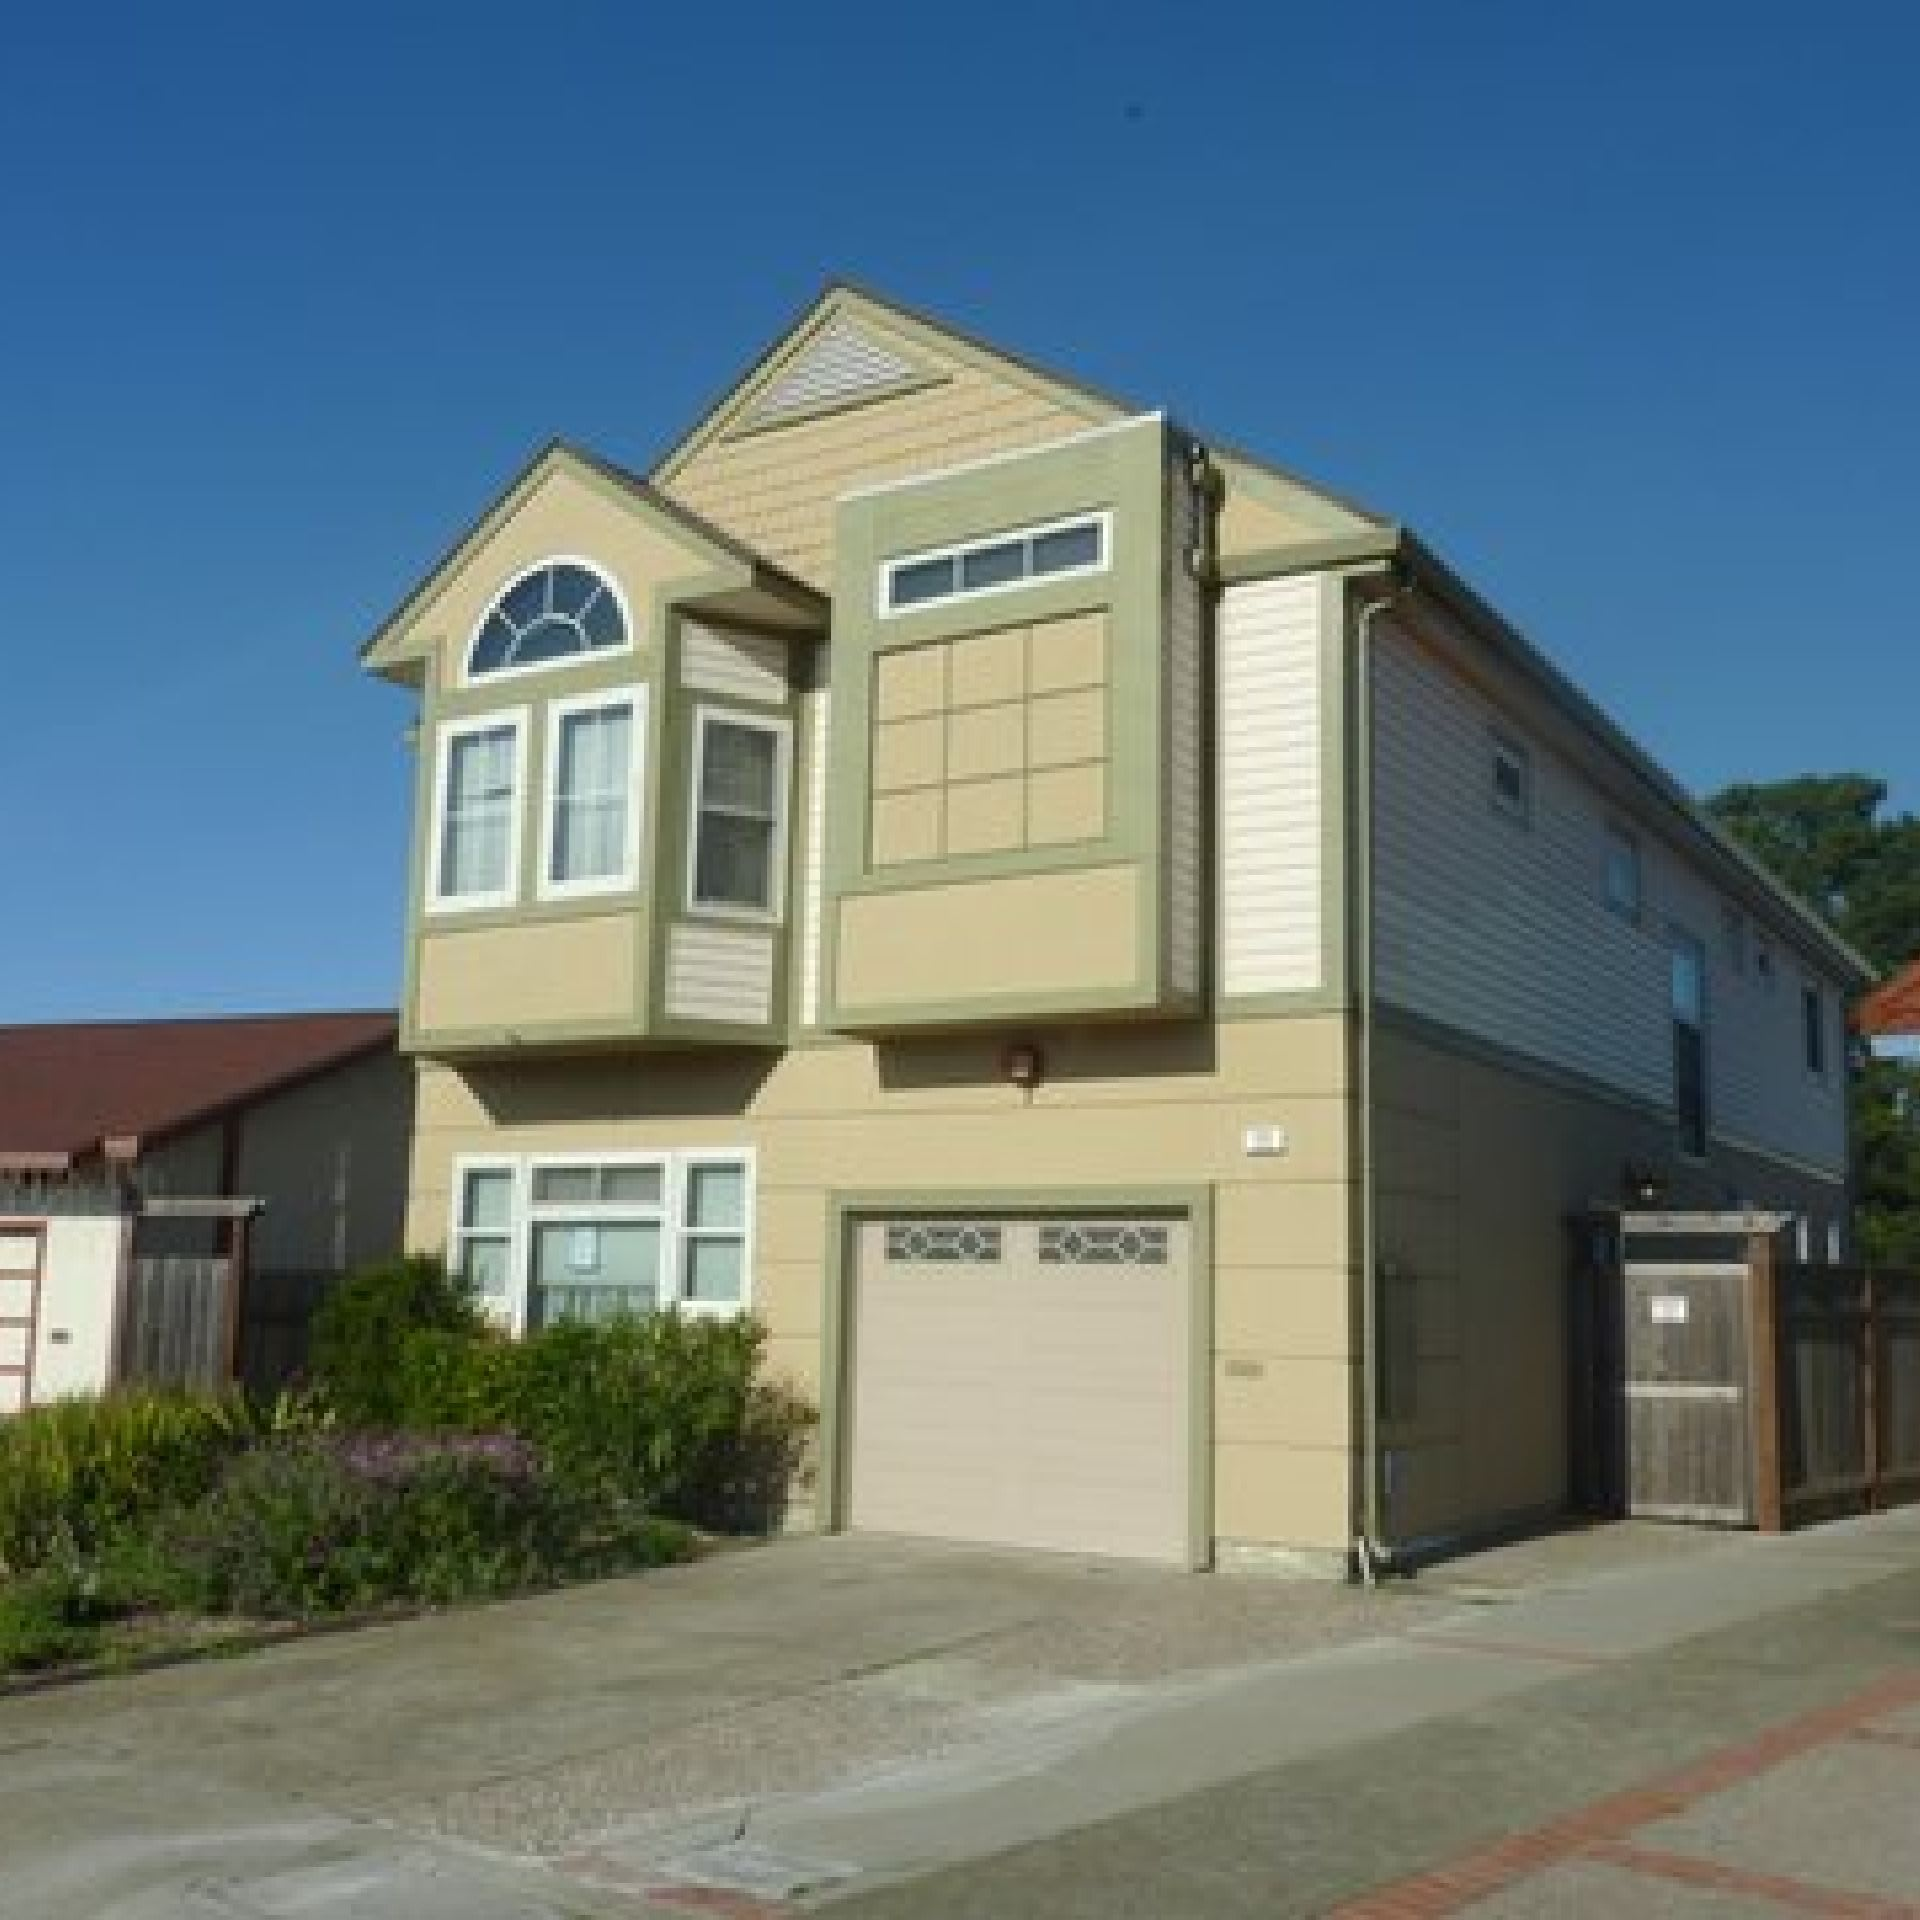 4BR/2.5BA House in Daly City